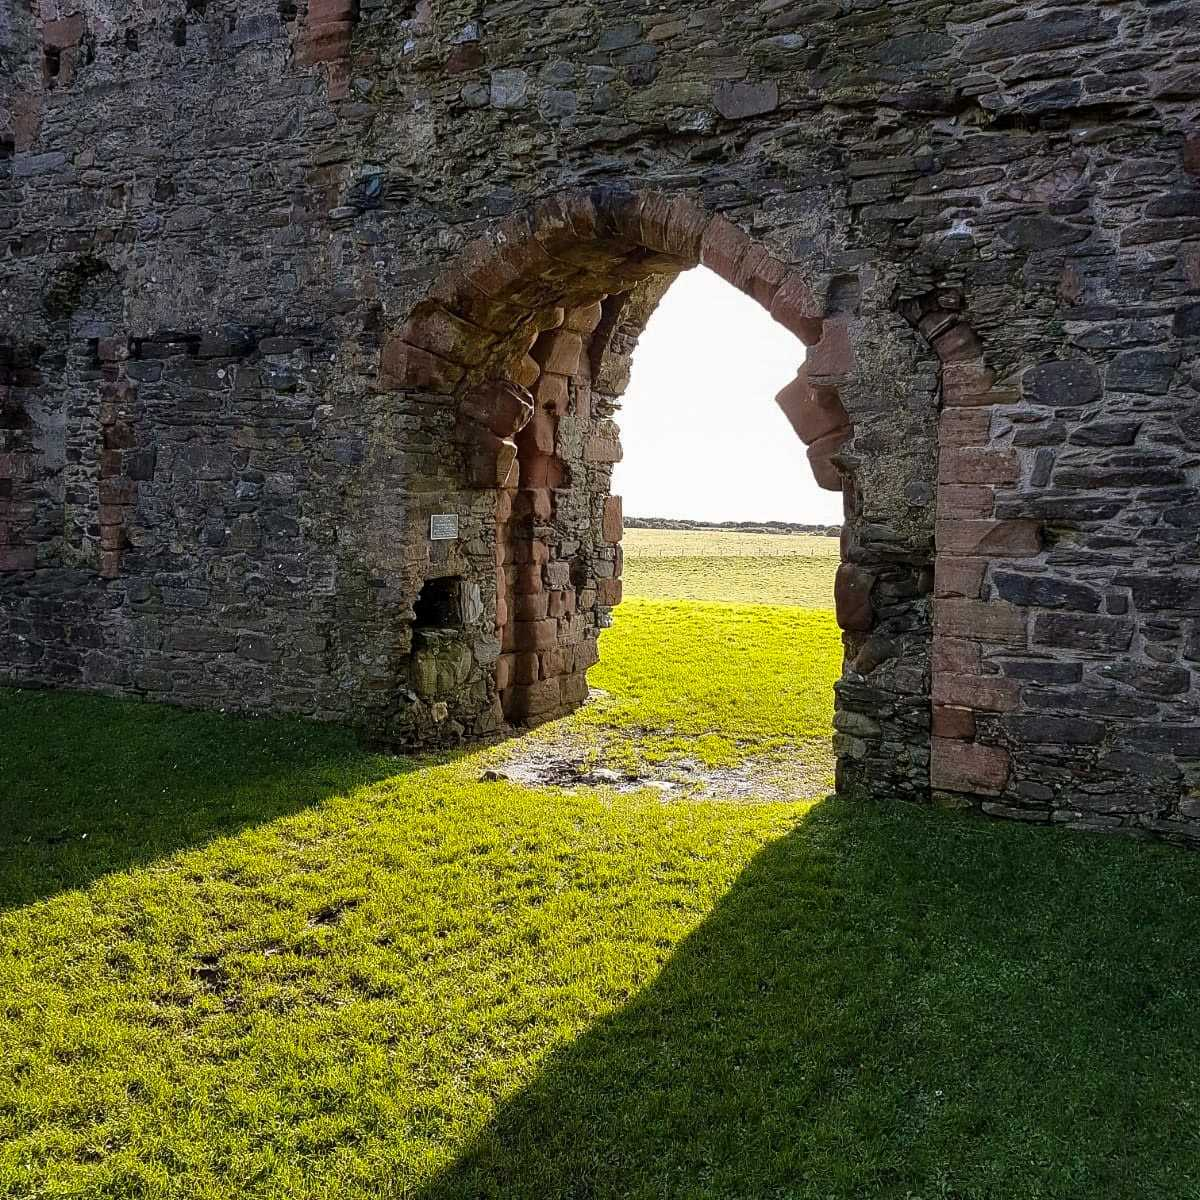 It's not a hugely interesting picture. A tall wall of stones, rising out of shot, stands on a slightly muddy grass field. In the centre of shot is an doorway opening in the wall, sunshine coming through, looking out onto a farmer's field.